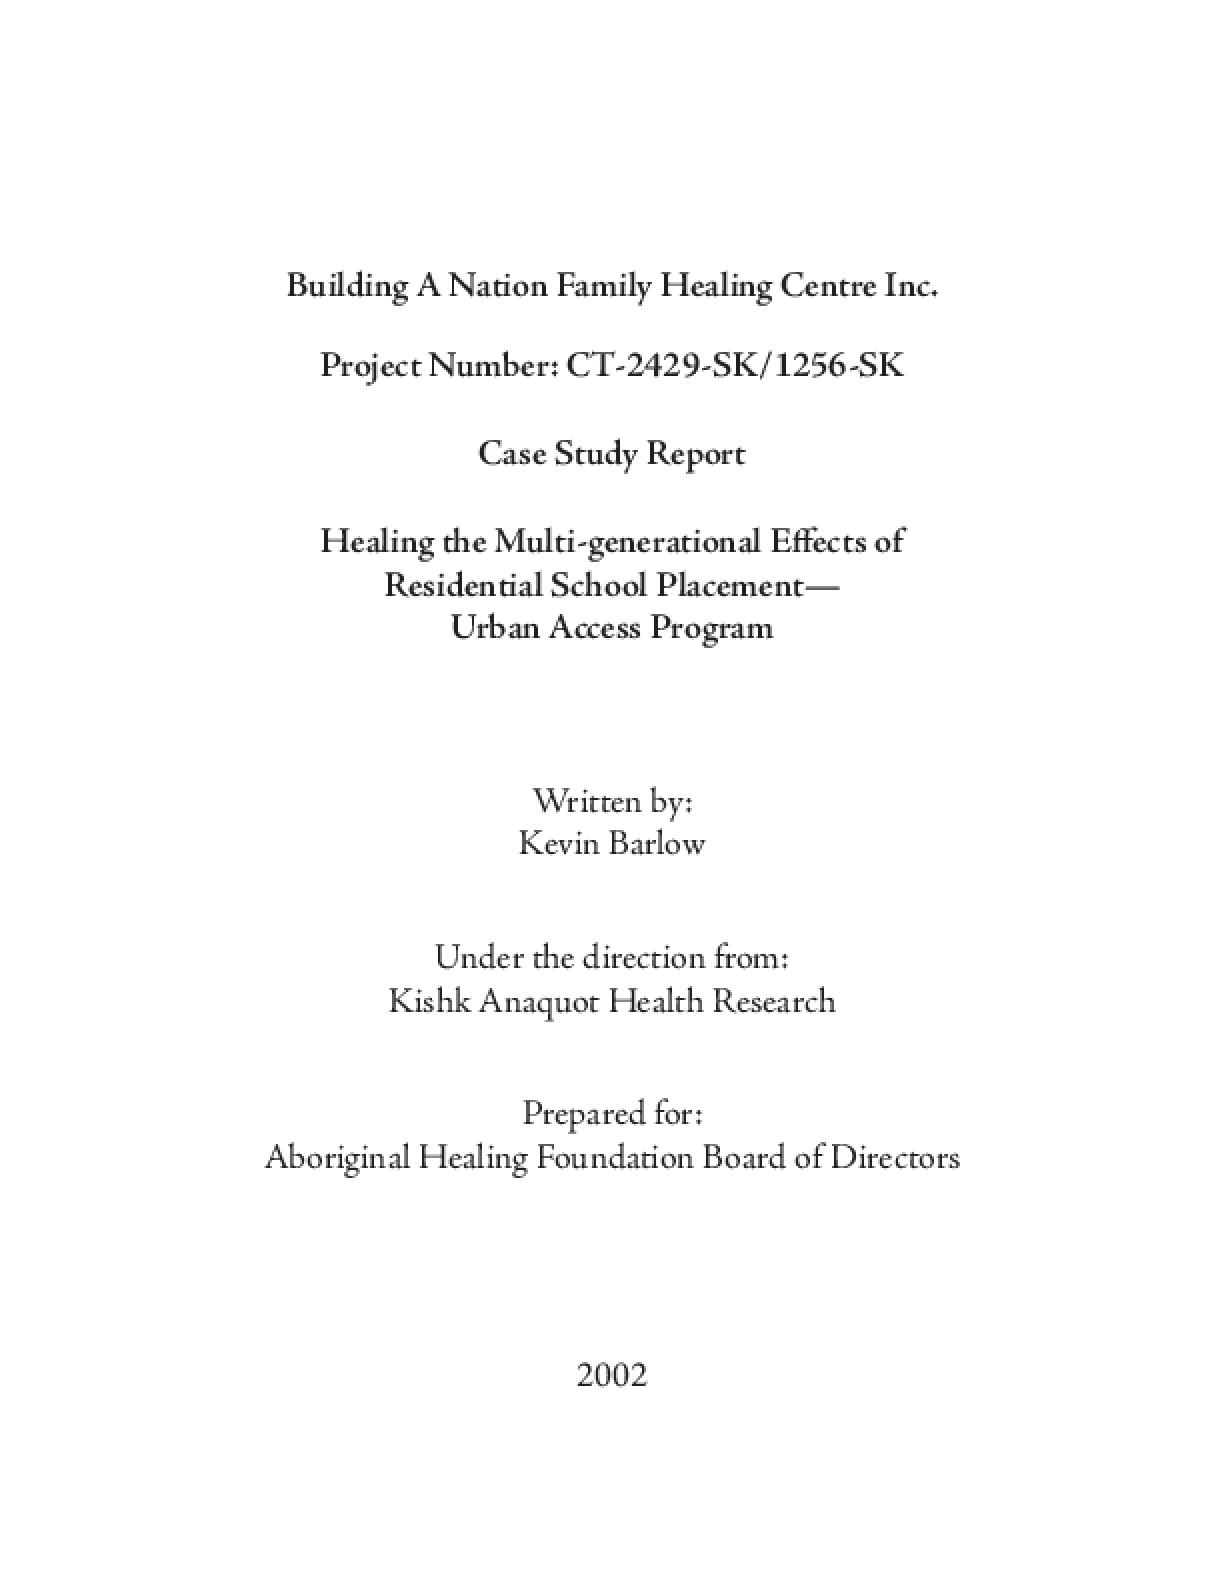 Healing the Multi-generational Effects of Residential School Placement: Urban Access Program